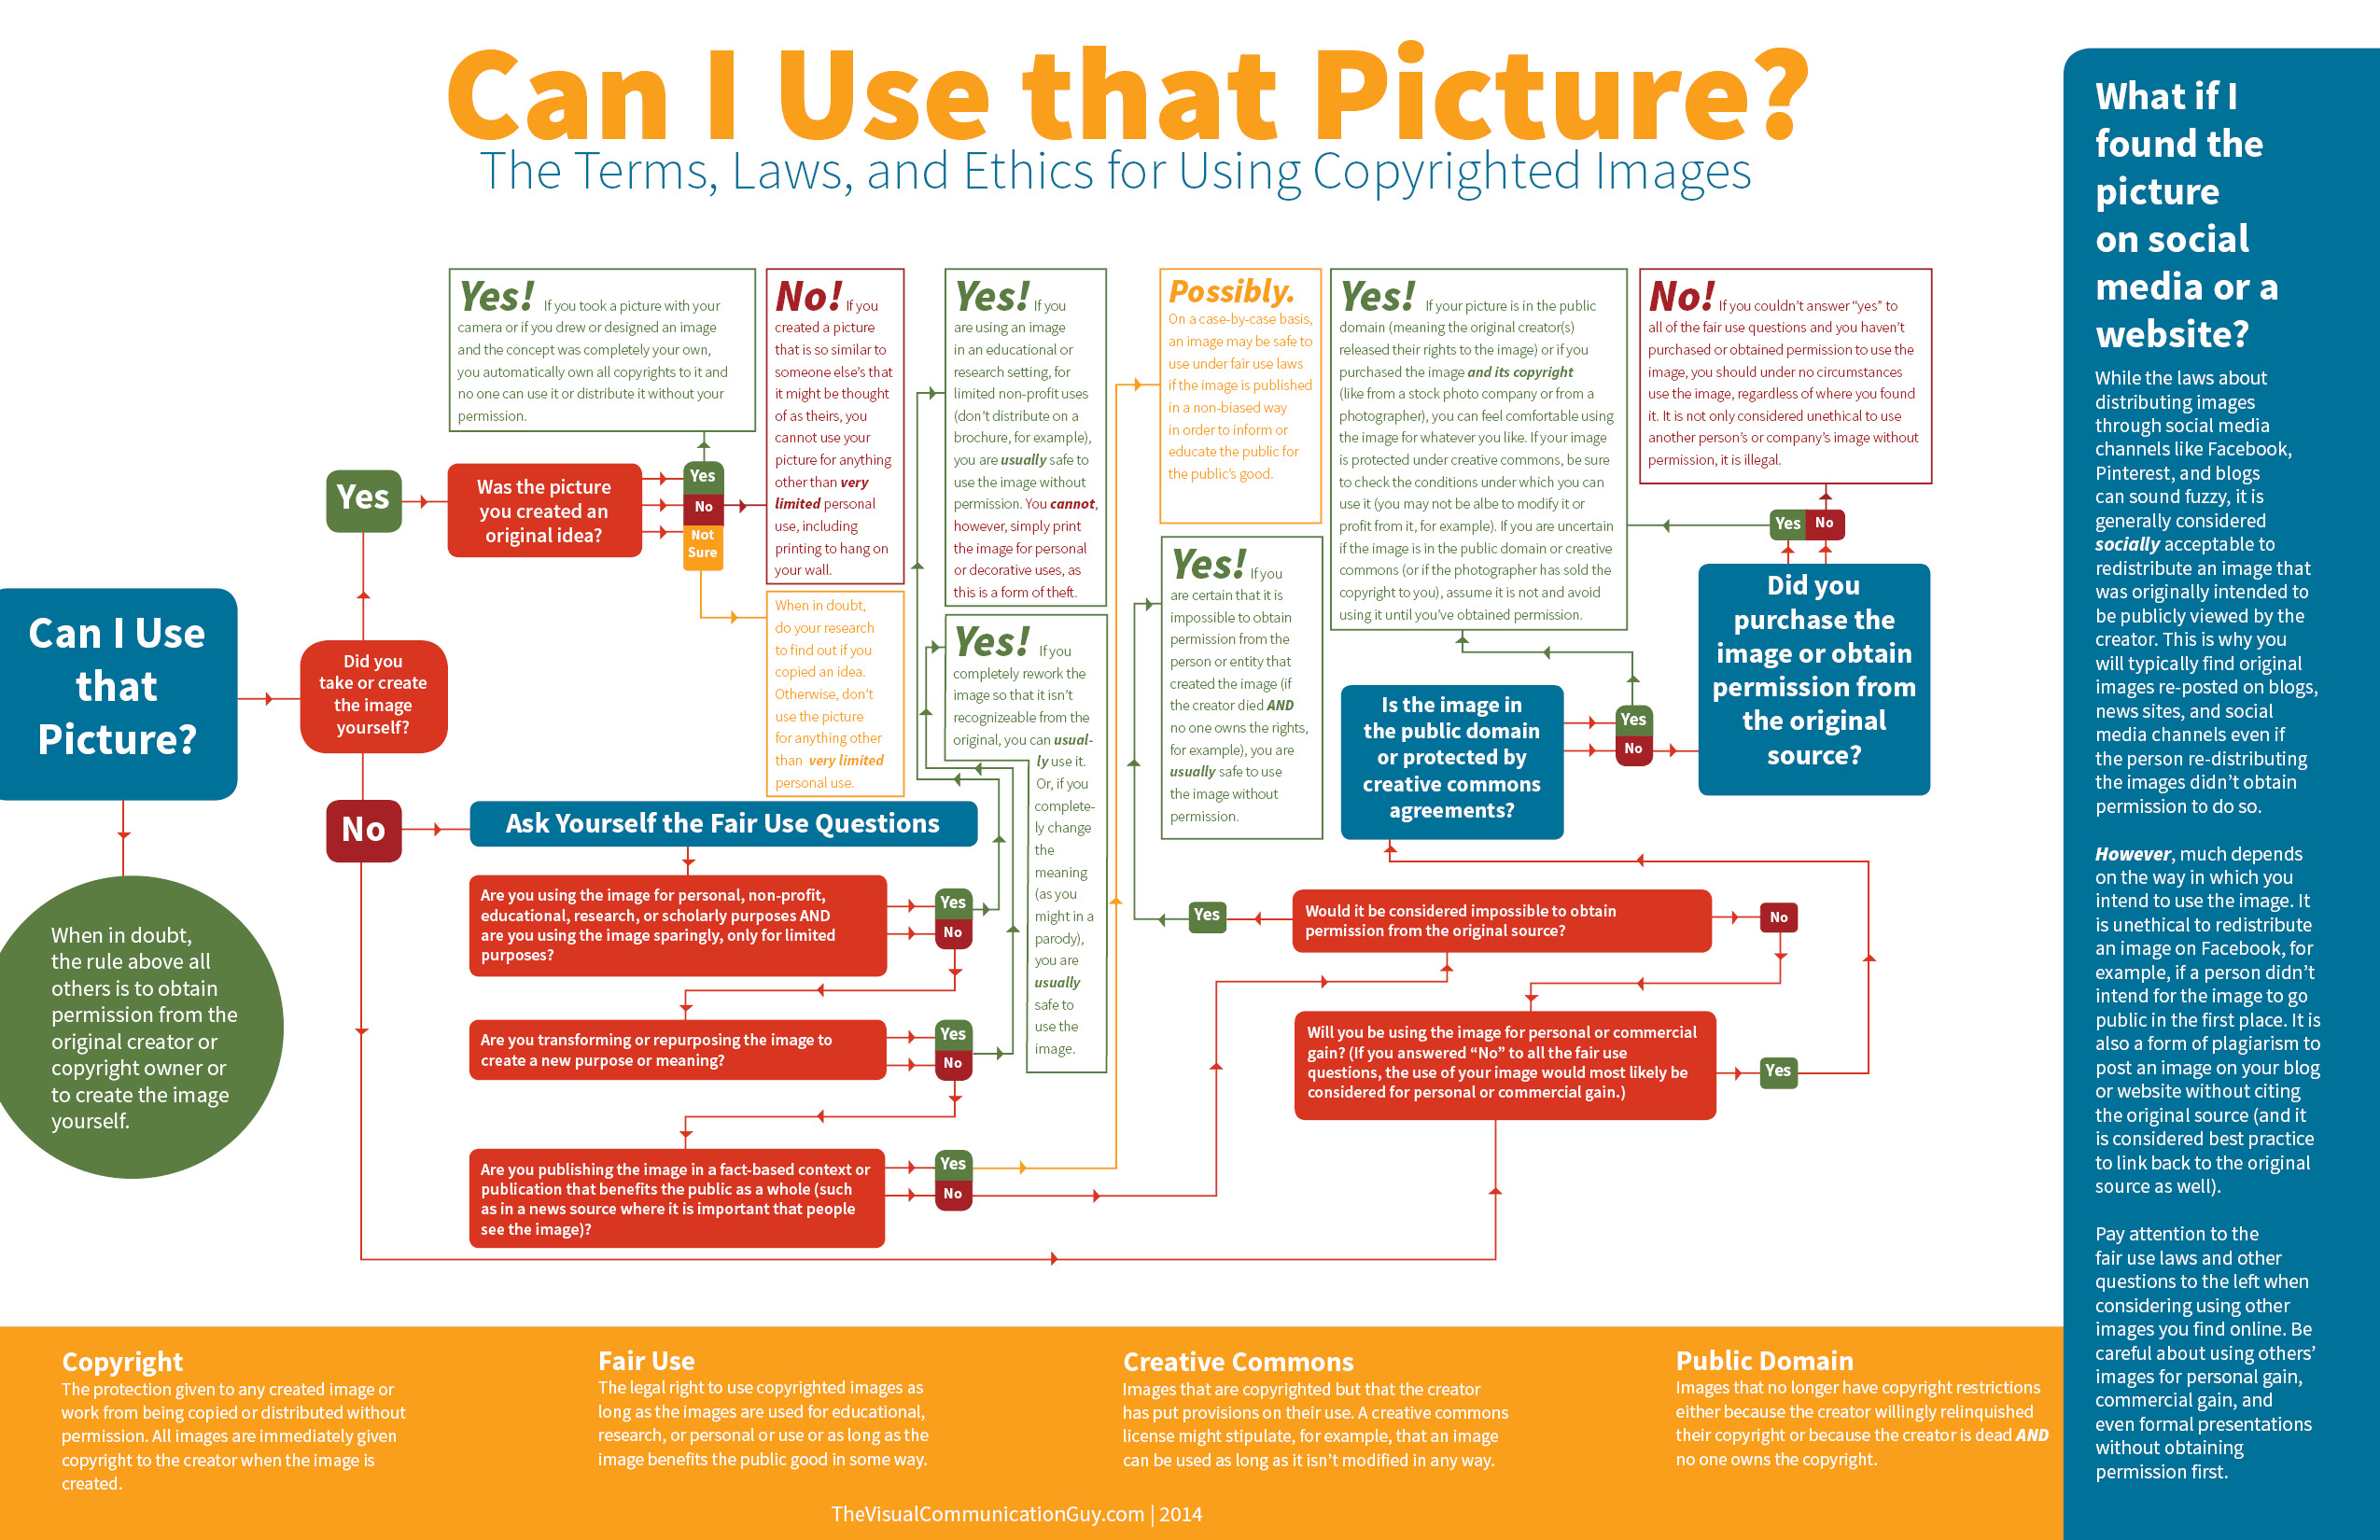 http://thevisualcommunicationguy.com/2014/07/14/can-i-use-that-picture/